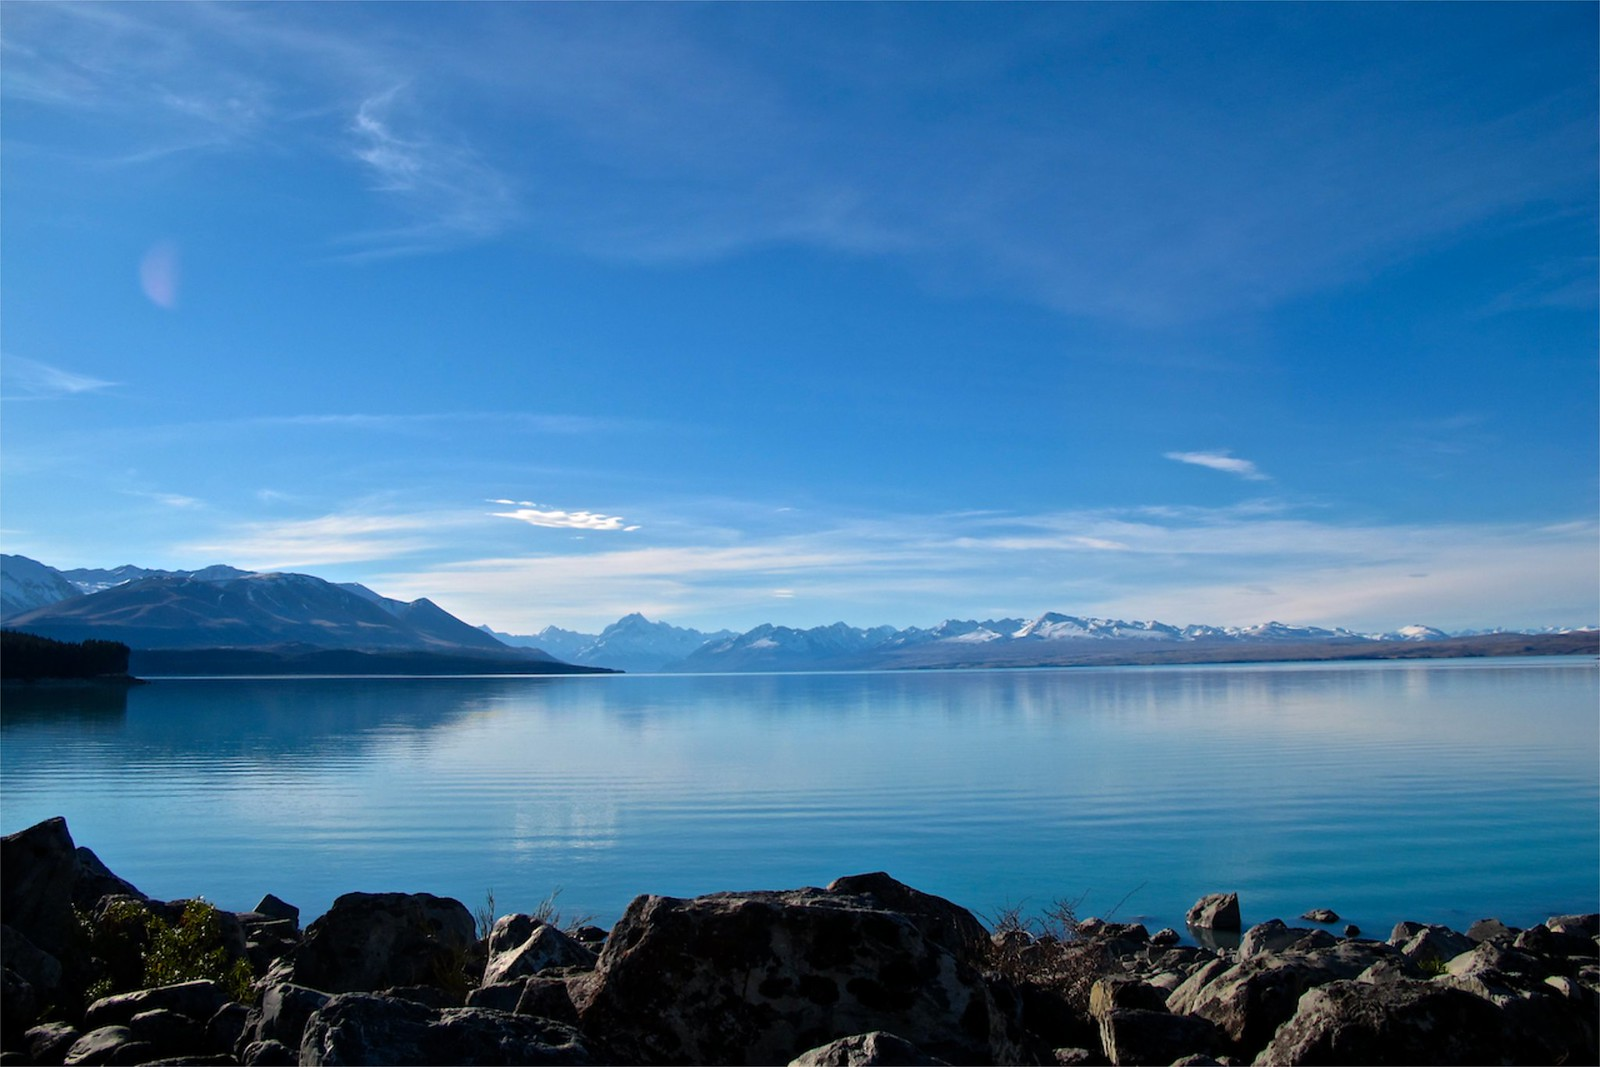 Amazing Crystal Clear Blue Color Of Pukaki Lake